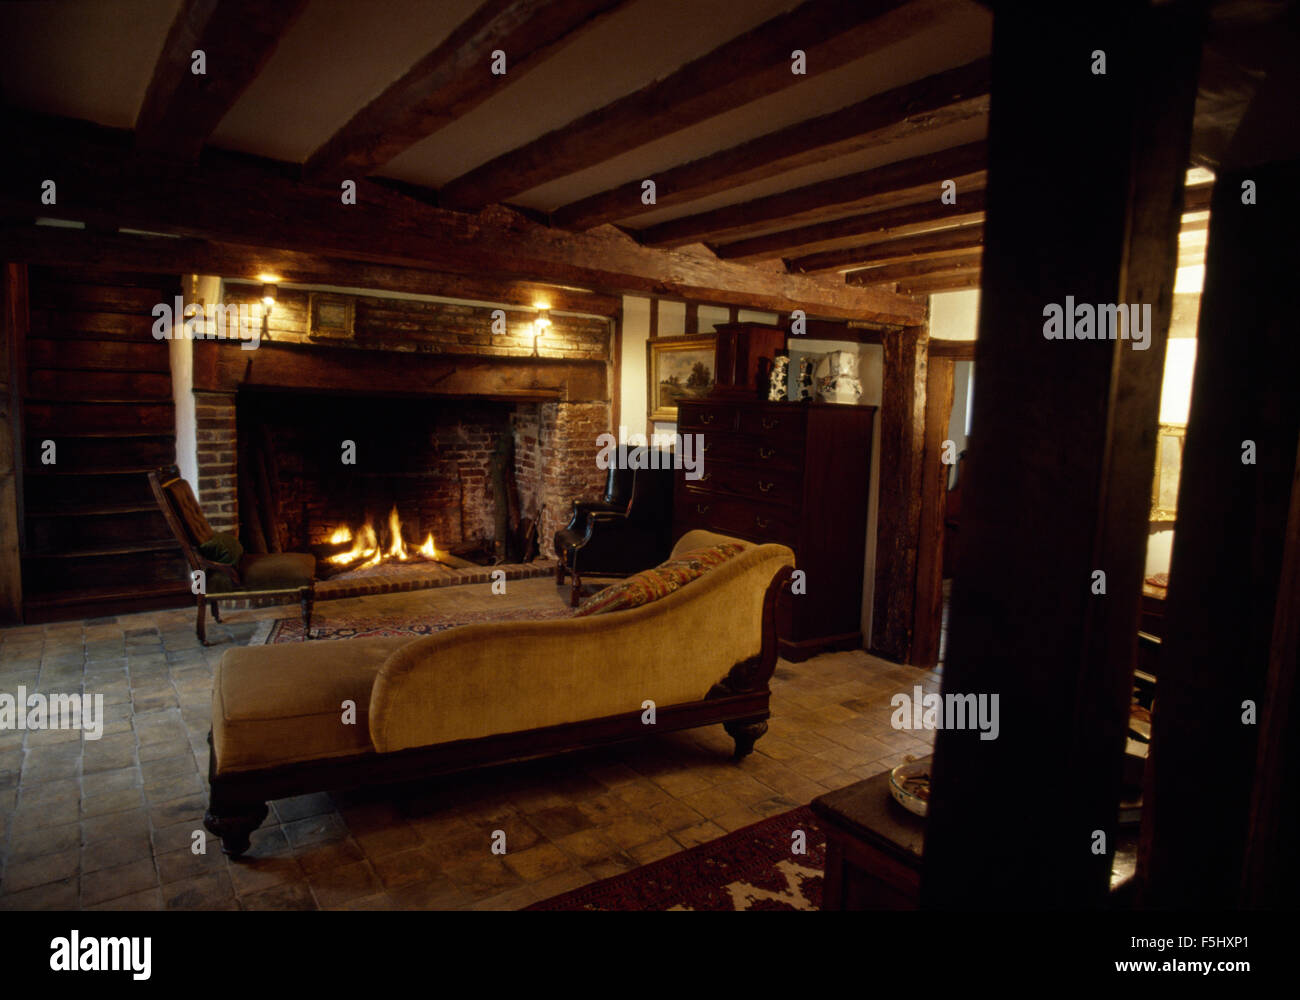 Velvet Chaise Longue In Old Fashioned Living Room With Inglenook